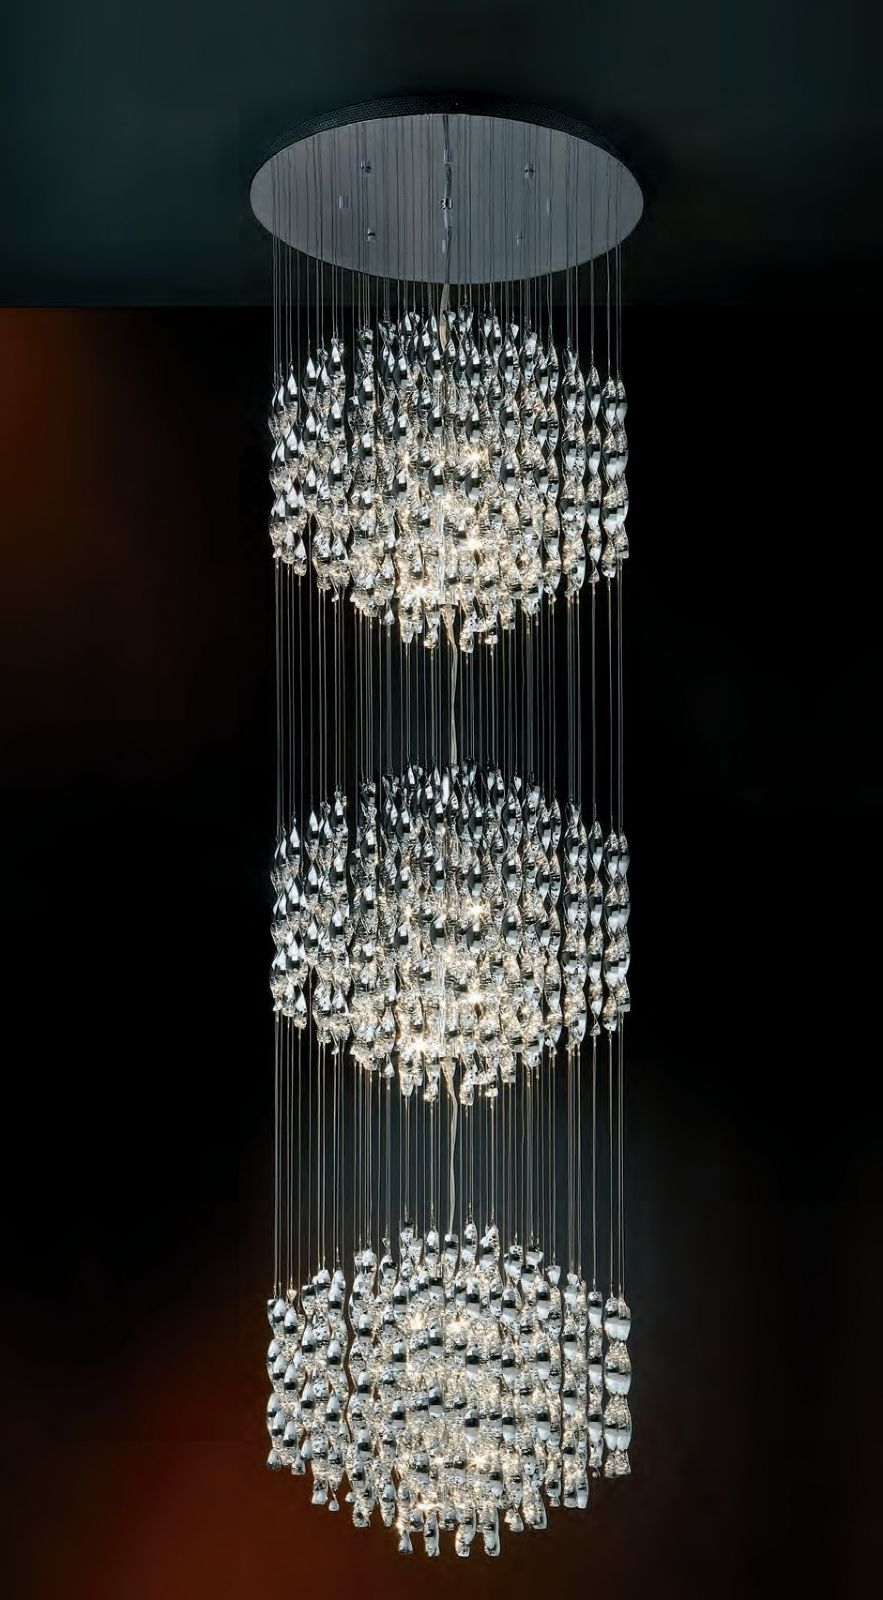 Spiral long drop triple pendant great for atriums high ceilings a hanging spiral long drop pendant in chrome prefect for installation on tall ceilings or in atriums from lighting styles arubaitofo Gallery